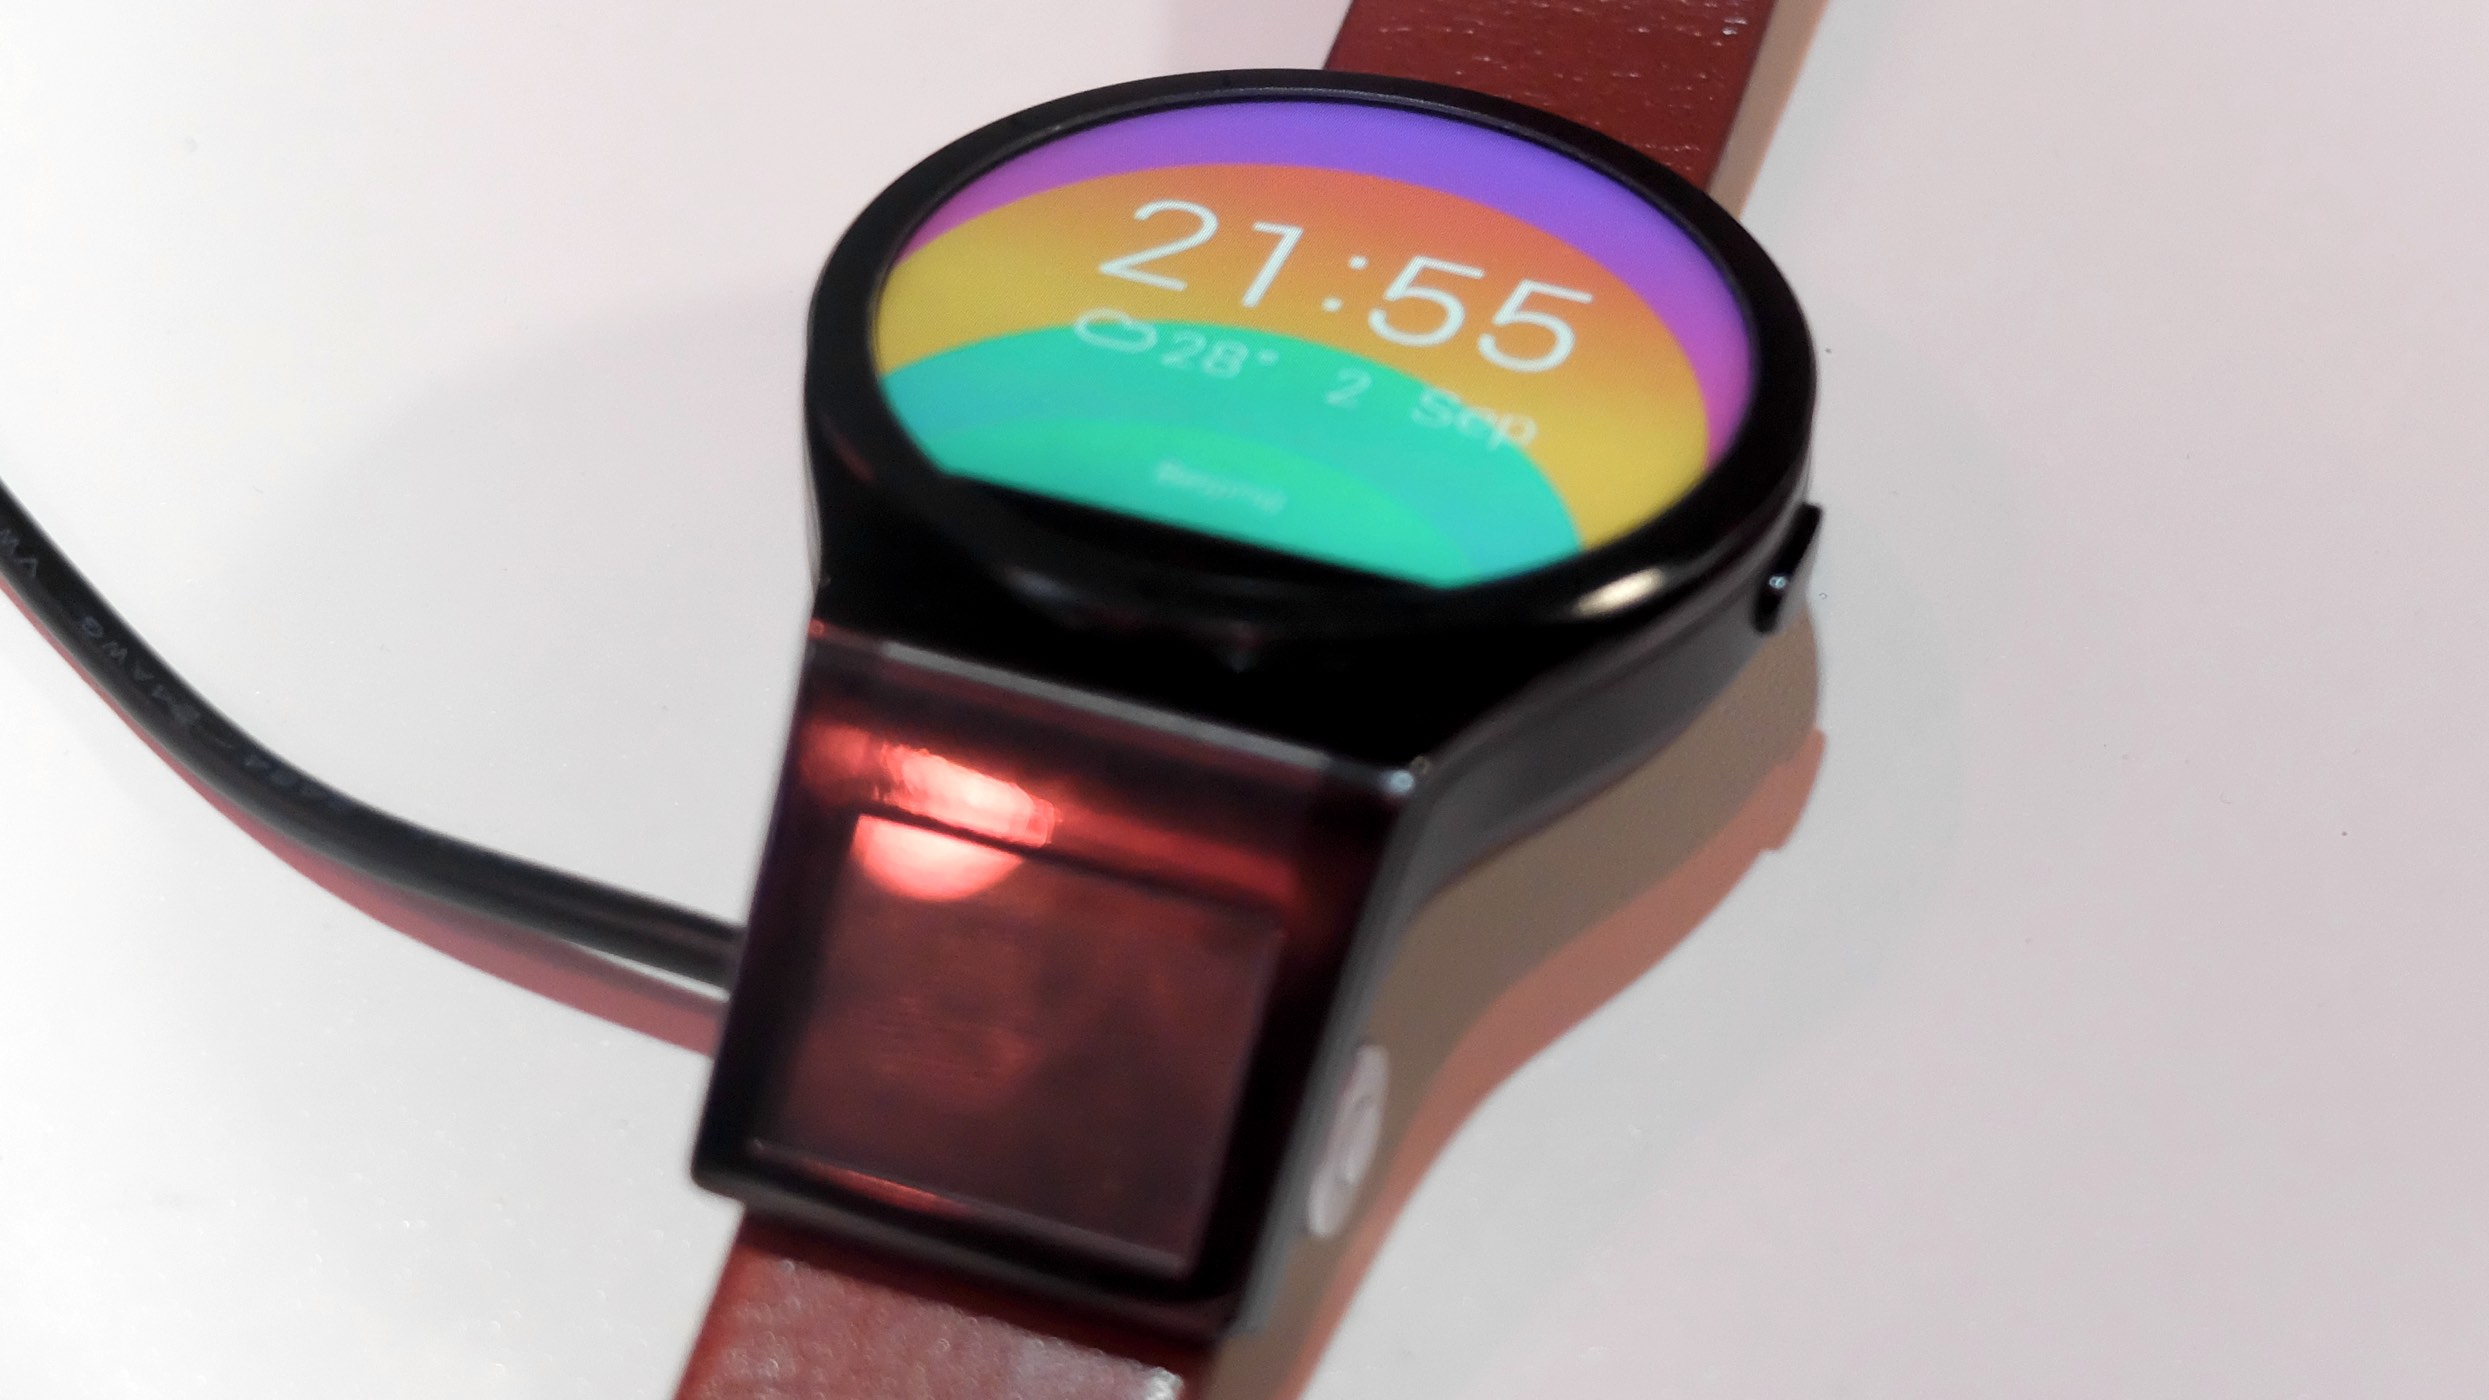 Lenovo's Magic View smartwatch is bonkers